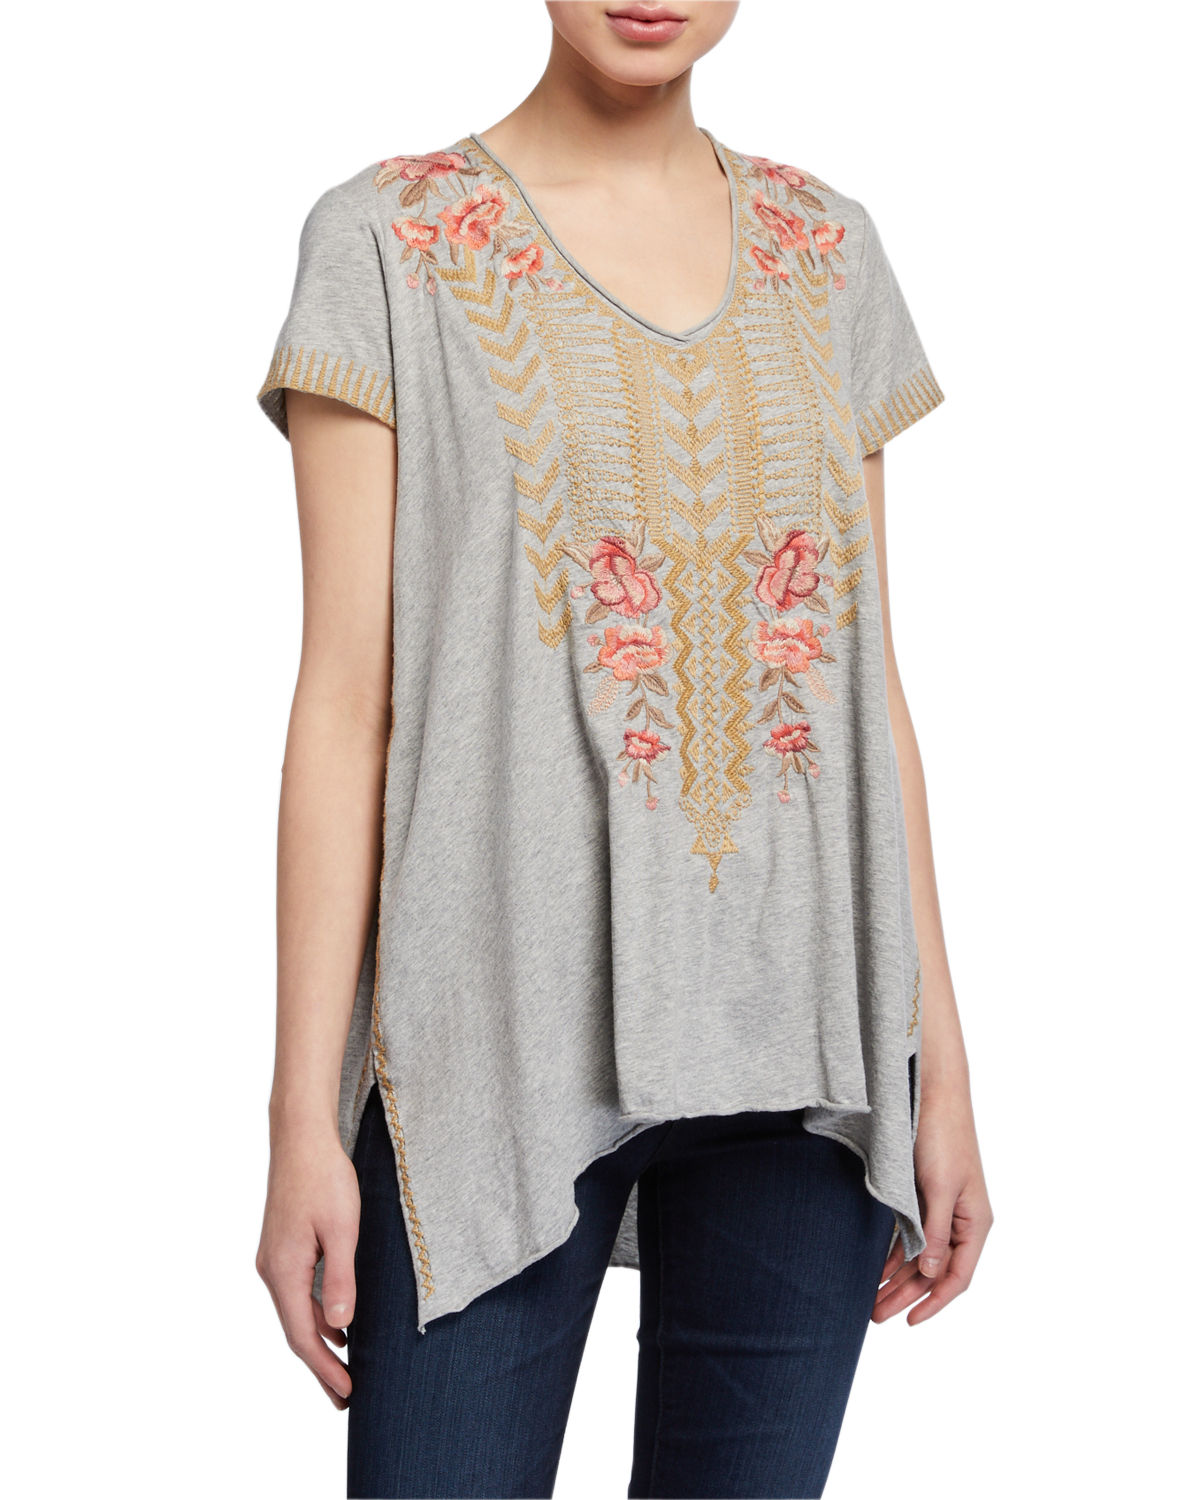 Johnny Was Knits PETITE RIANNE EMBROIDERED KNIT DRAPE TOP